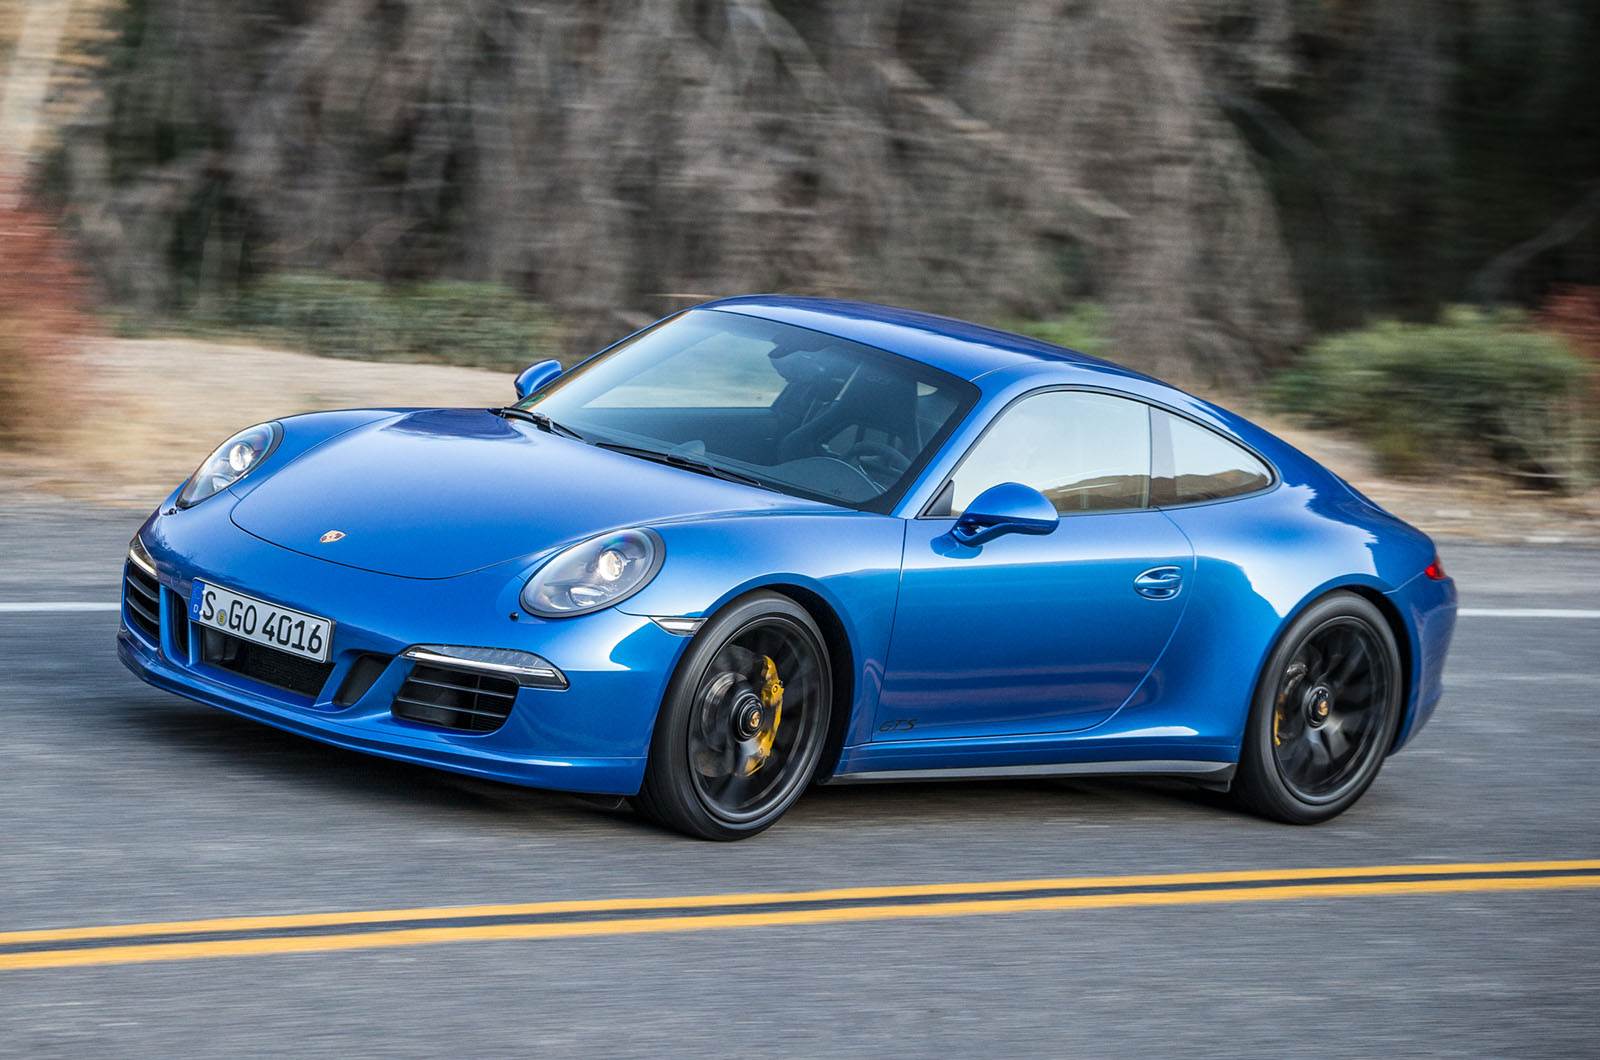 2014 porsche 911 carrera 4 gts pdk review autocar. Black Bedroom Furniture Sets. Home Design Ideas